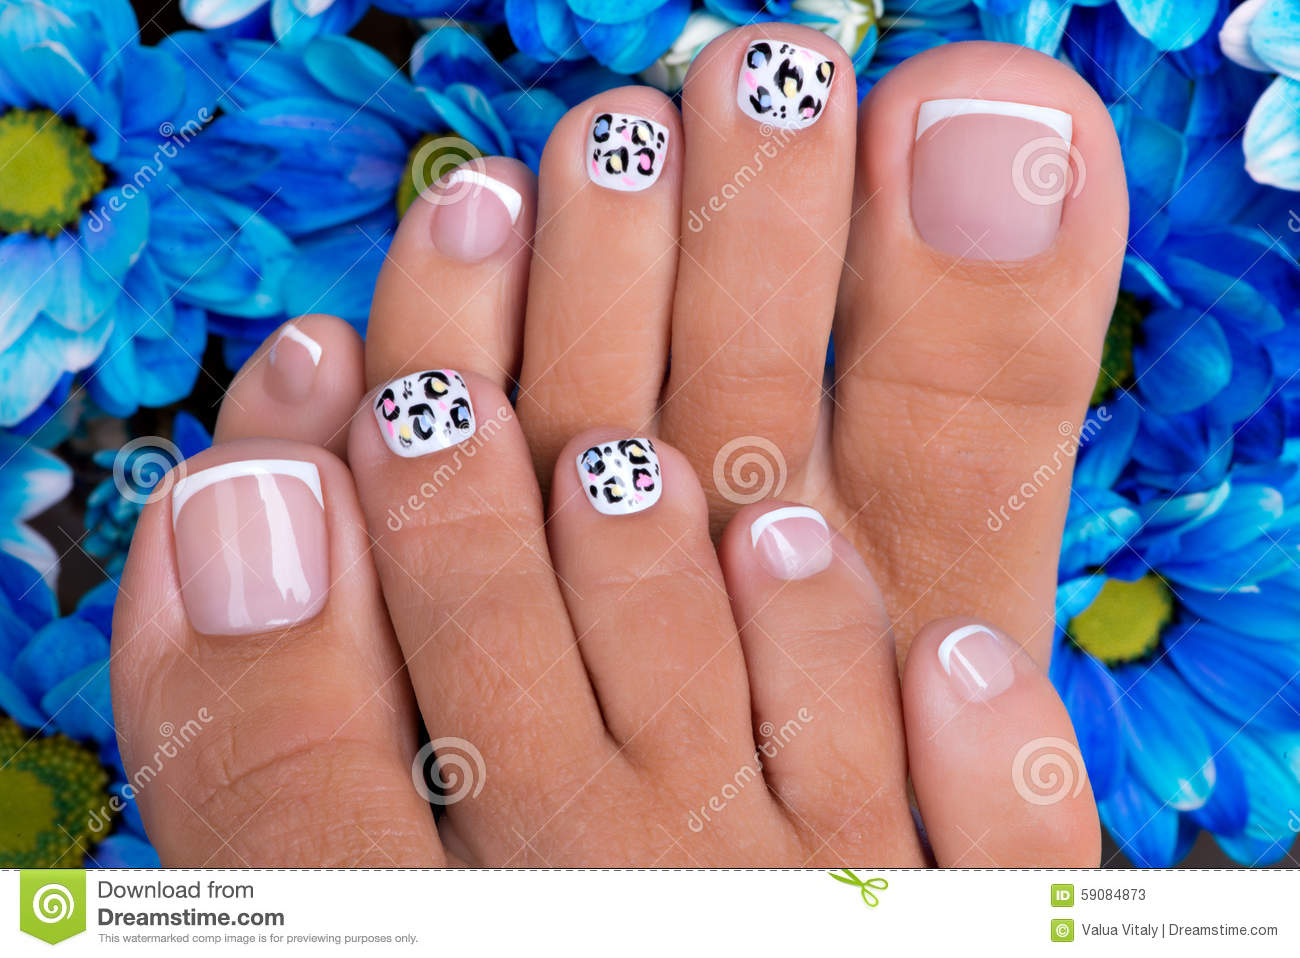 Nail art and legs stock image image of sensual nails 60334953 beautiful womans nails of legs with beautiful french manicure stock photos prinsesfo Images